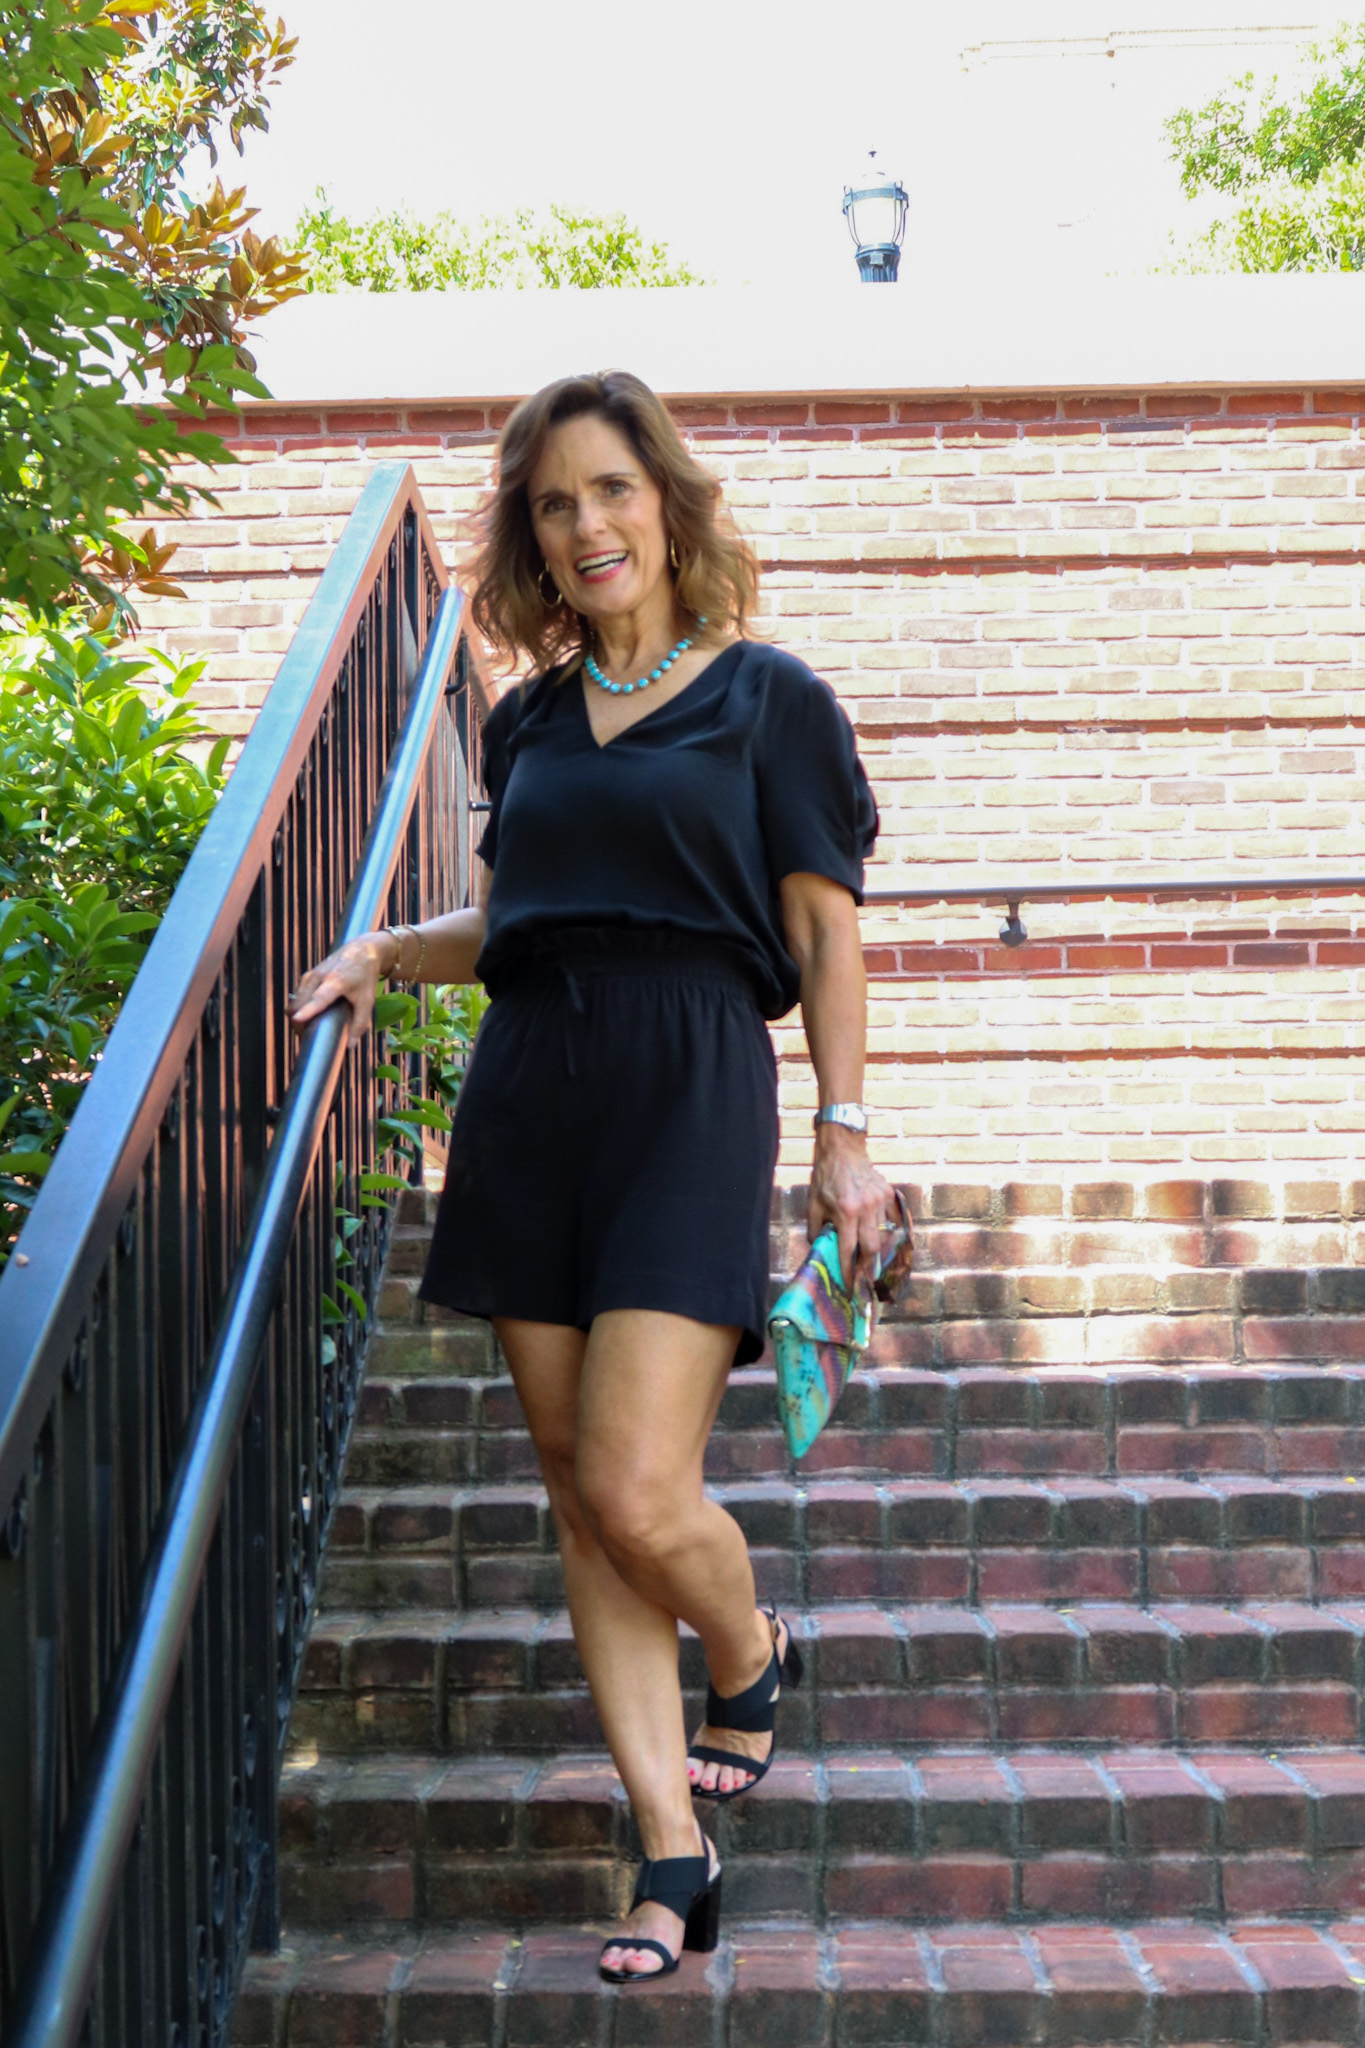 woman over 50 walking down a brick staircase wearing black summer silks, a short sleeve vneck top and shorts